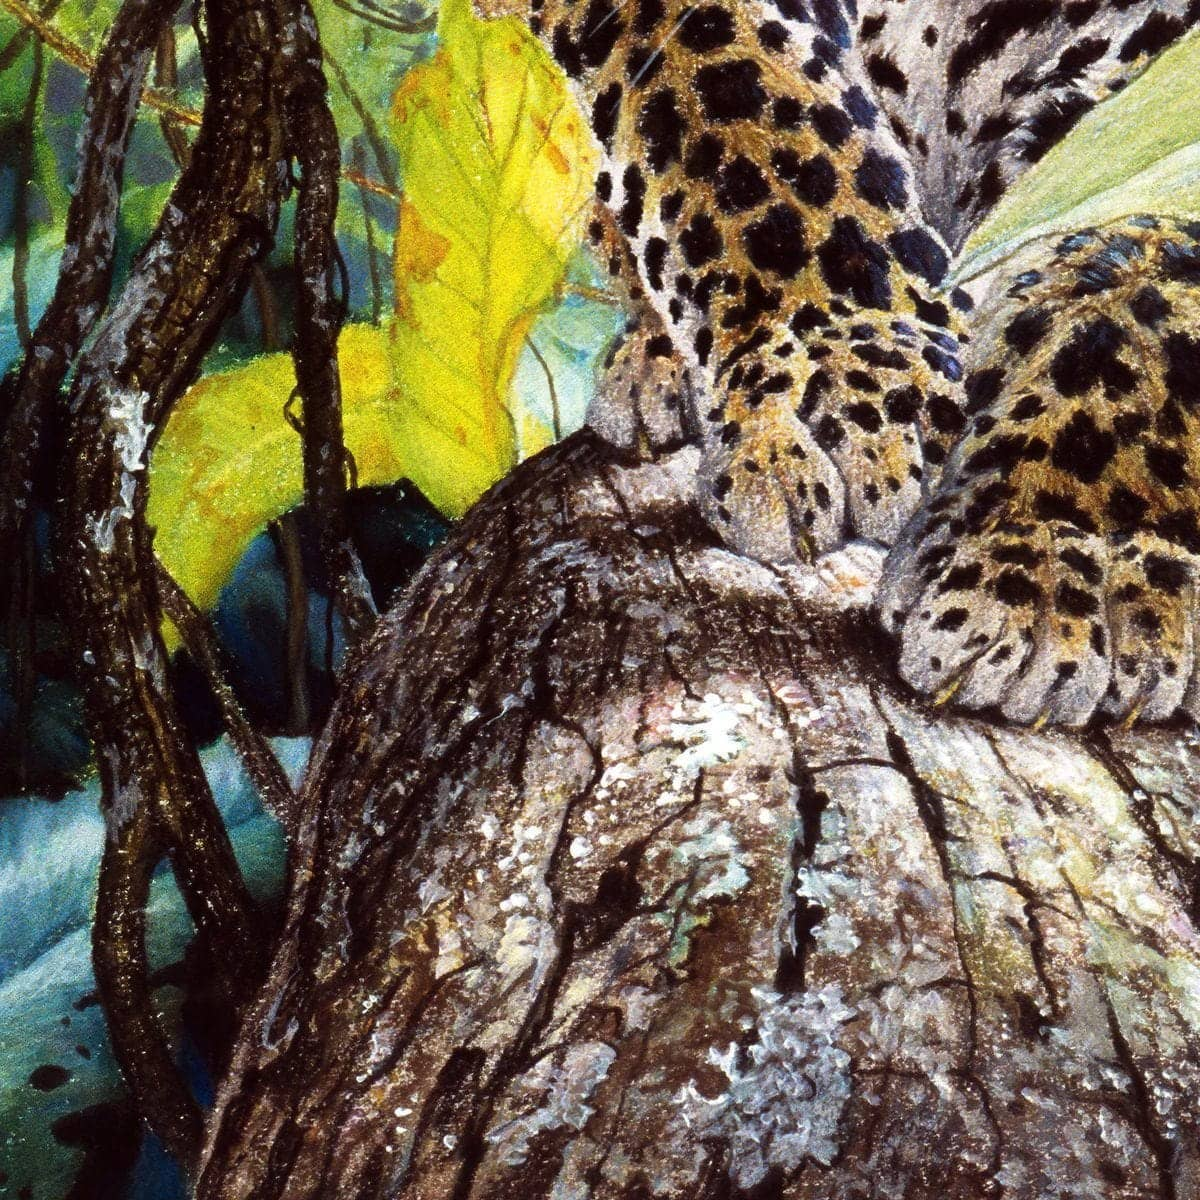 Jaguar Cub - Art Print by Glen Loates from the Glen Loates Store